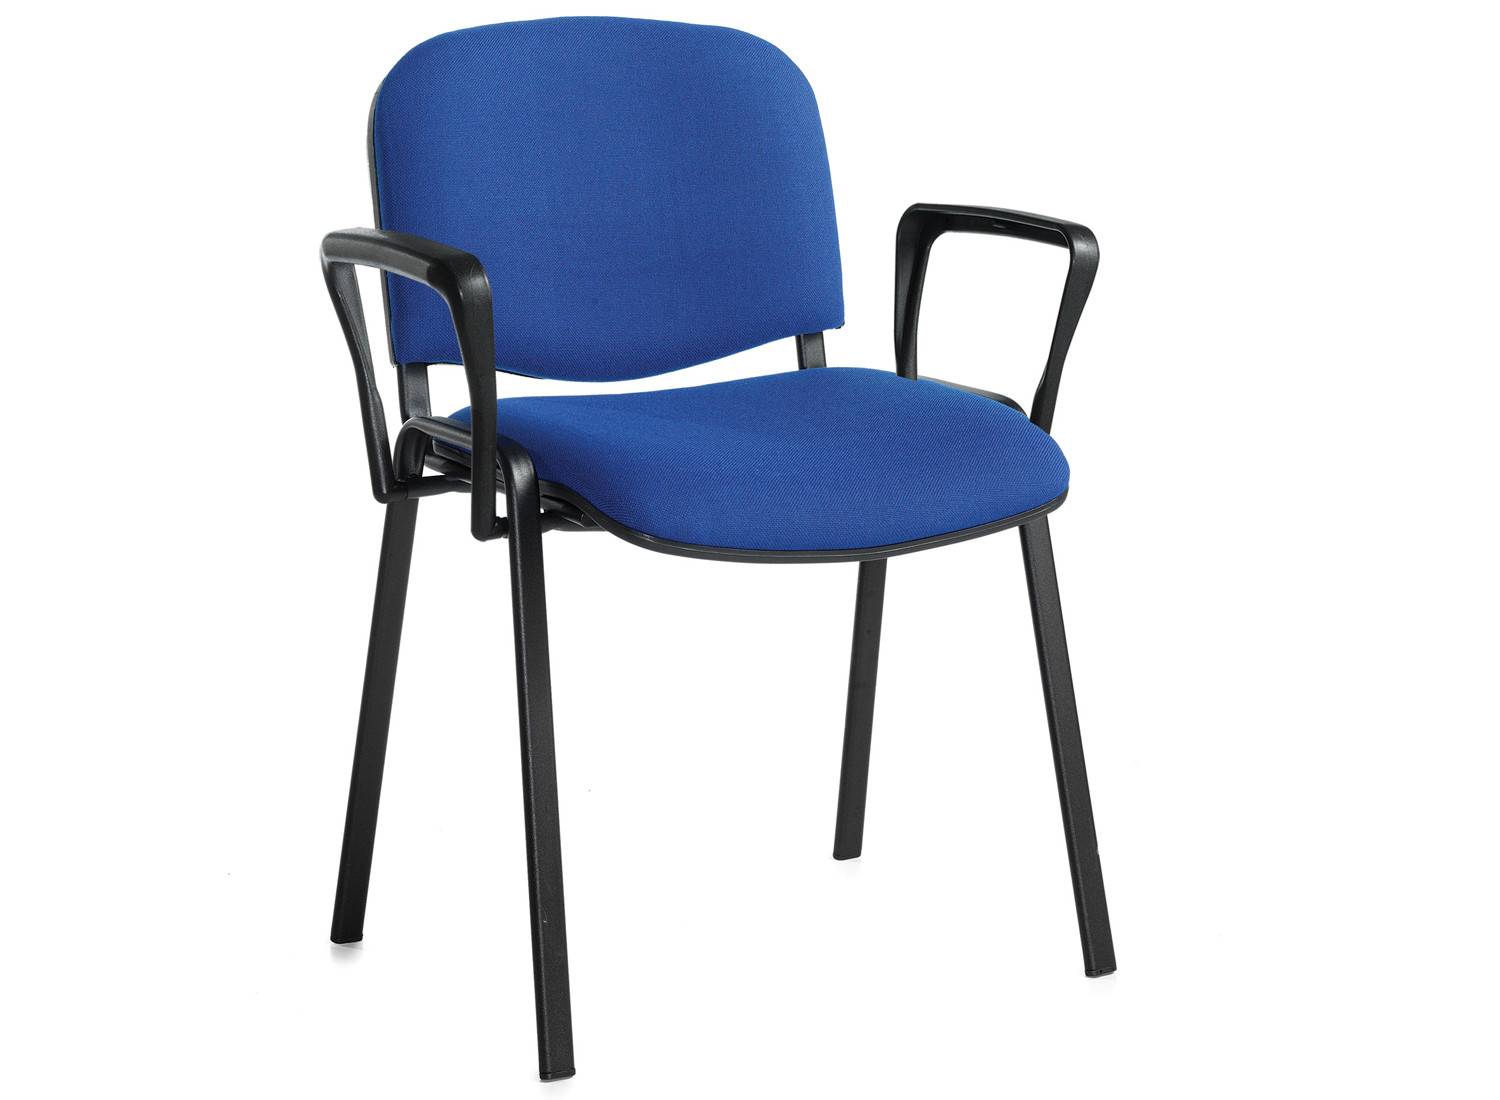 Conference chair with arms (black frame)